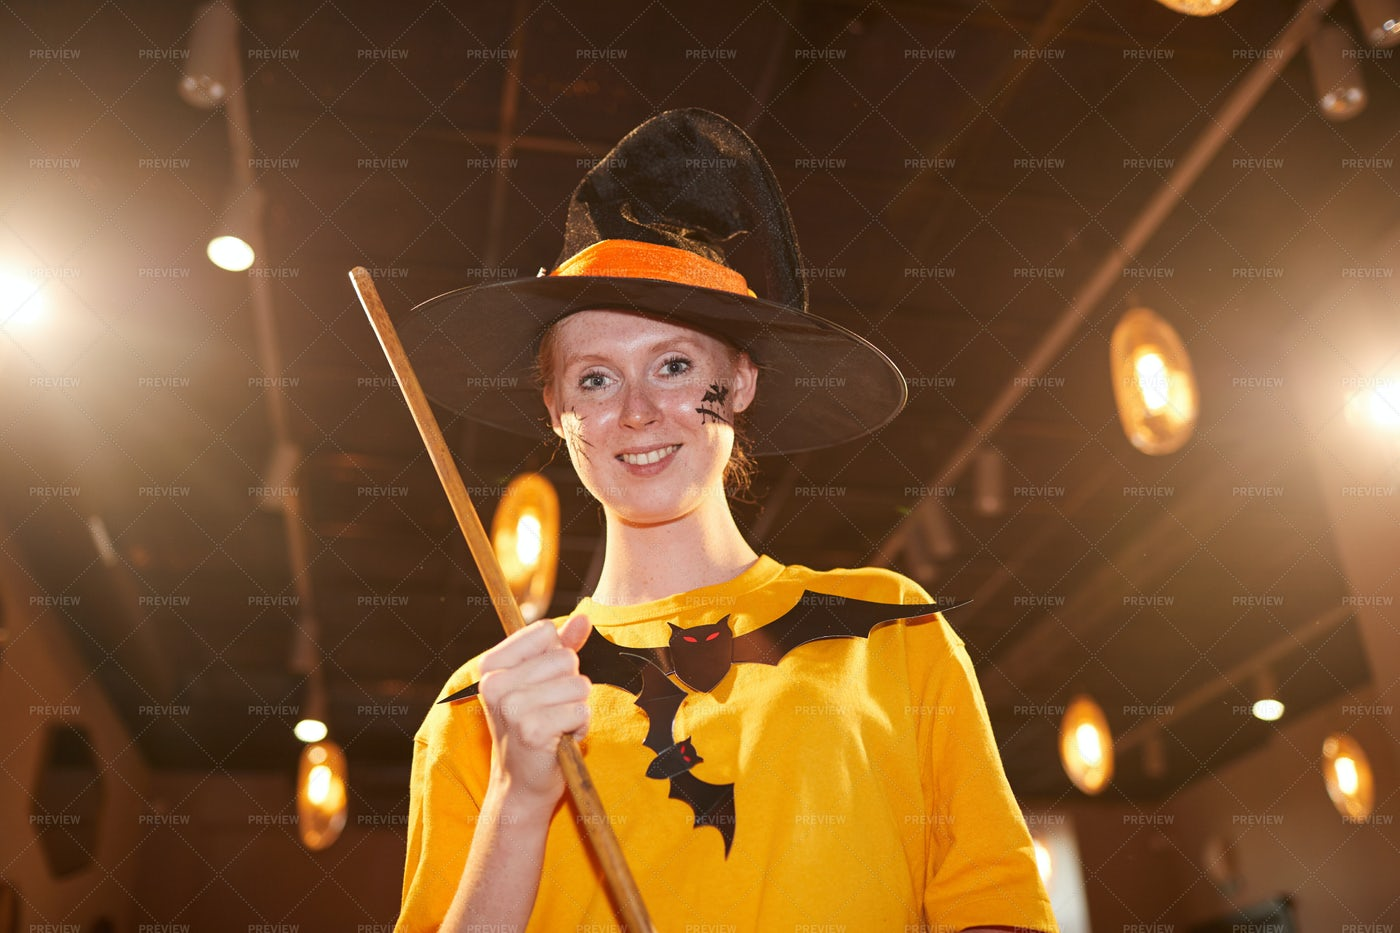 Adult Woman In Witch Costume On...: Stock Photos